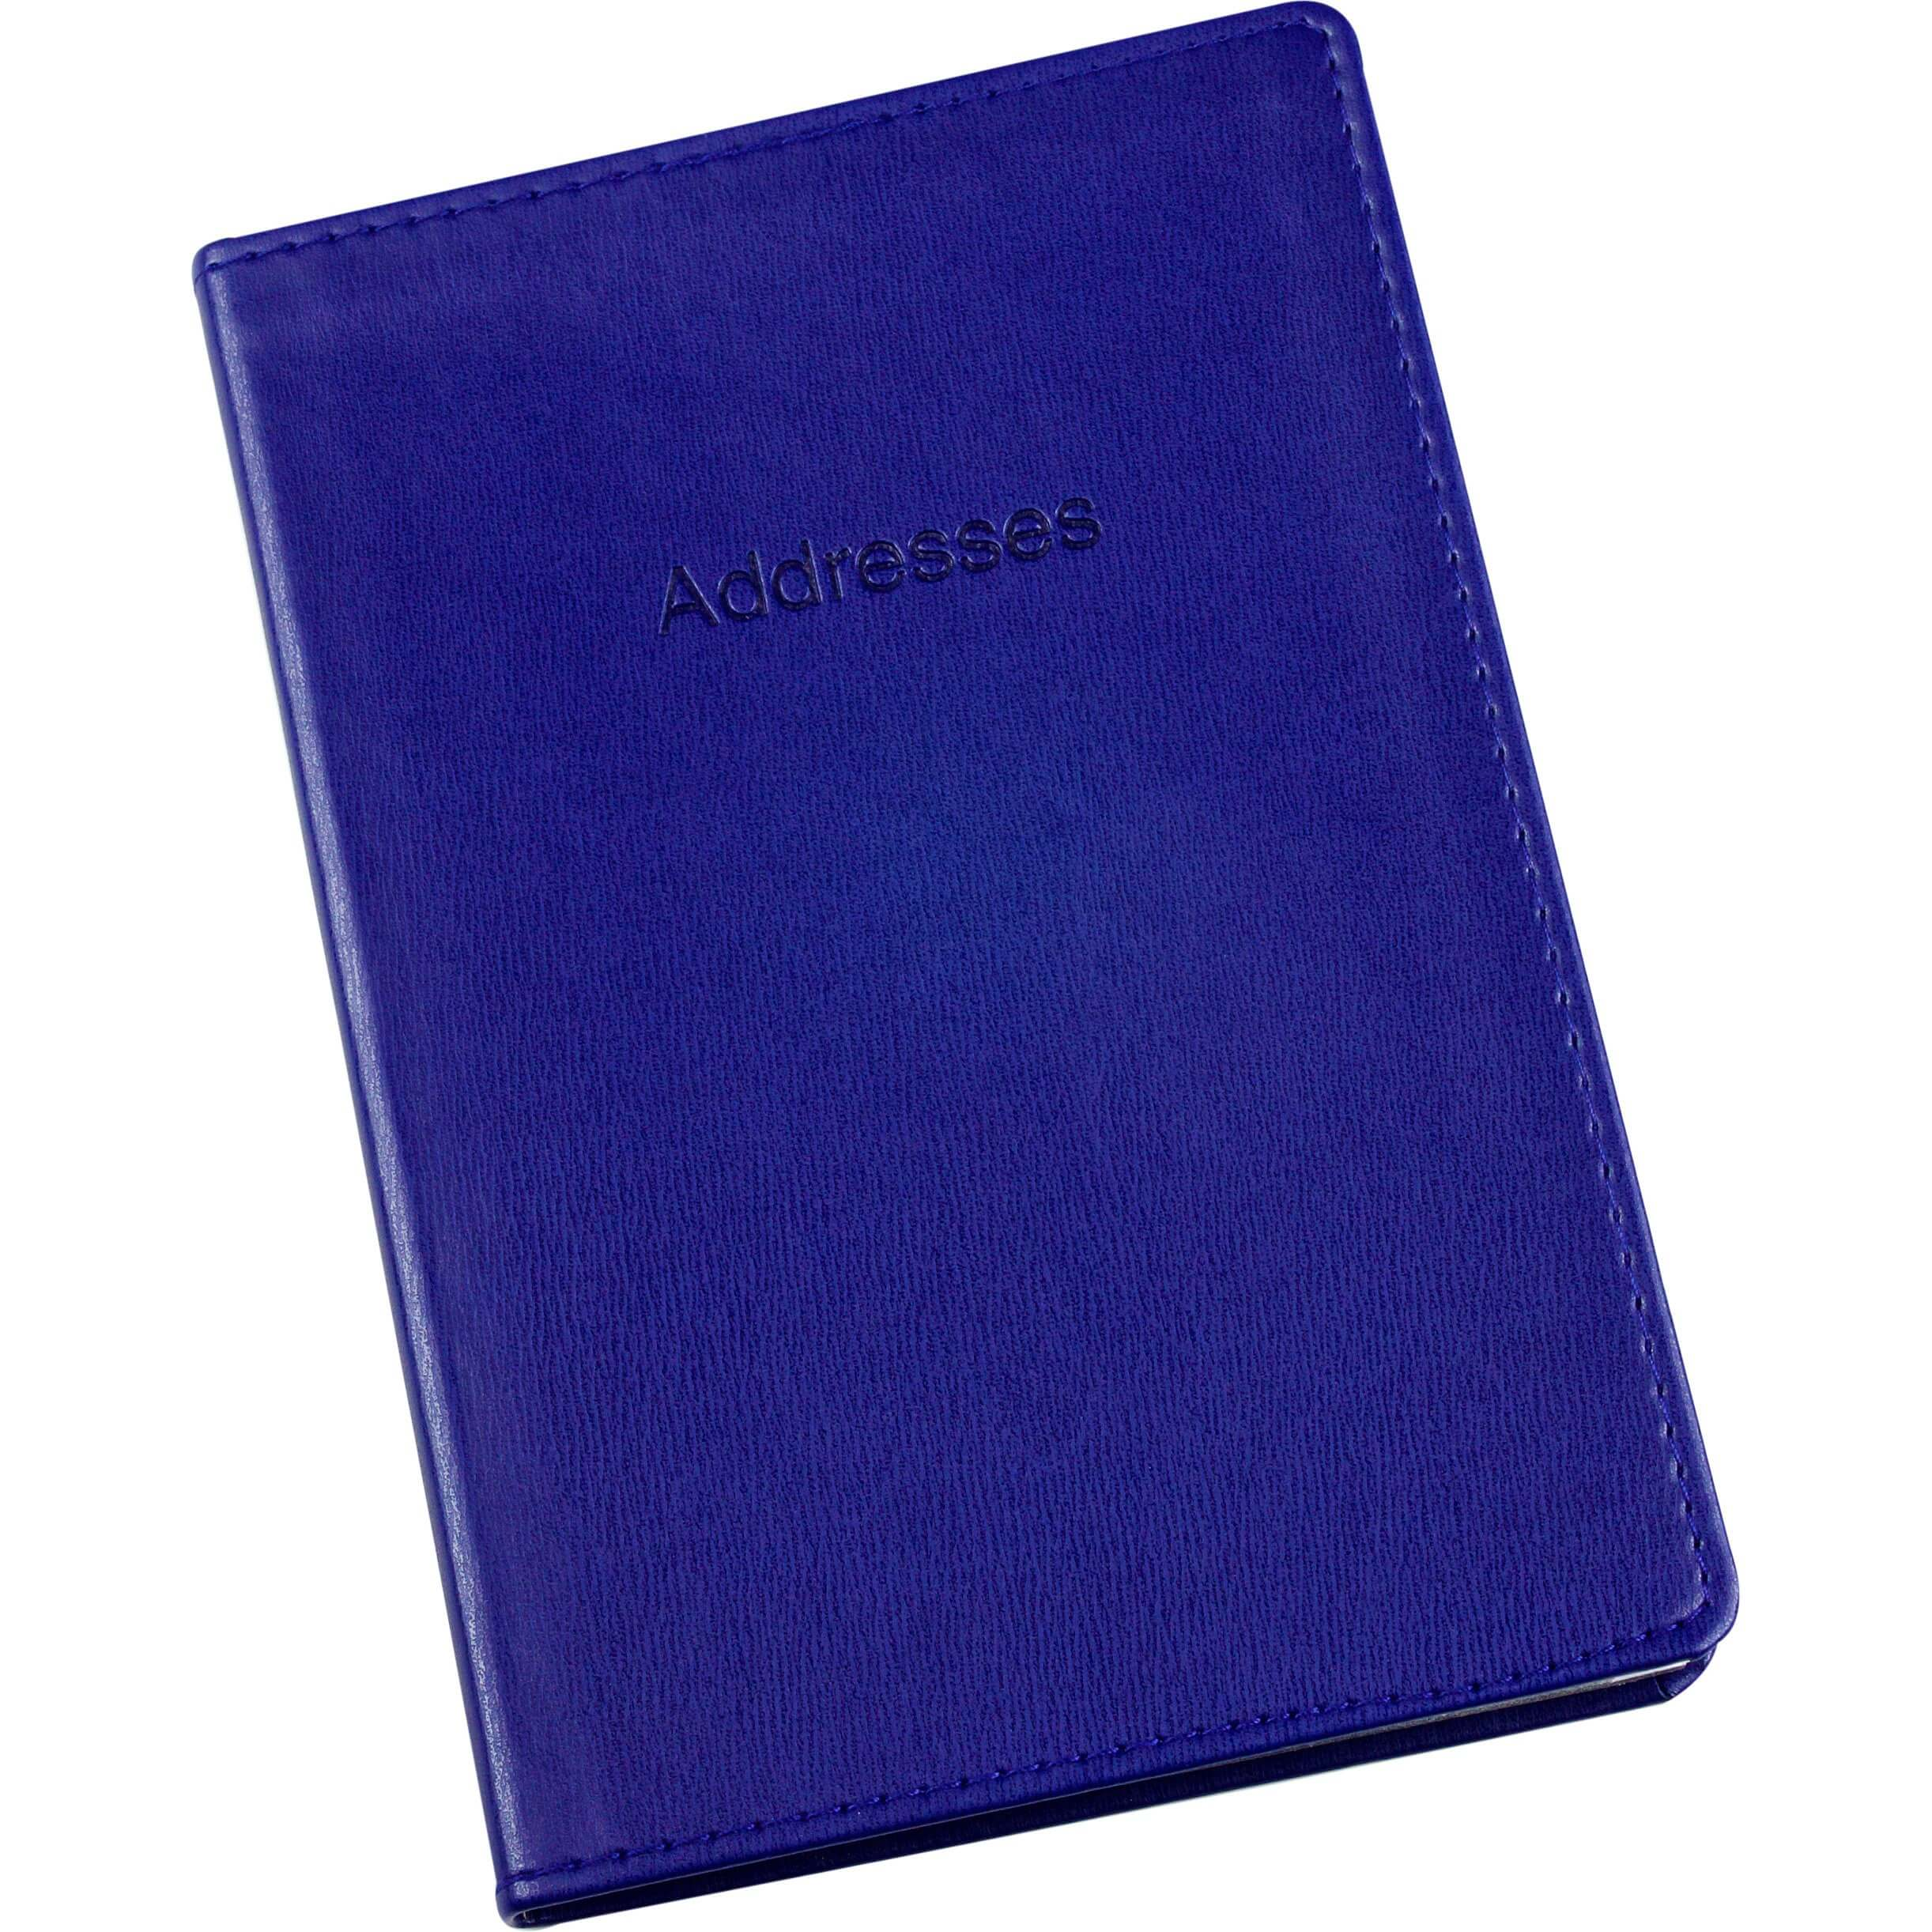 Esposti Address Book - Soft Leather Feel Stitched Cover - Blue - Size 131 x 196mm